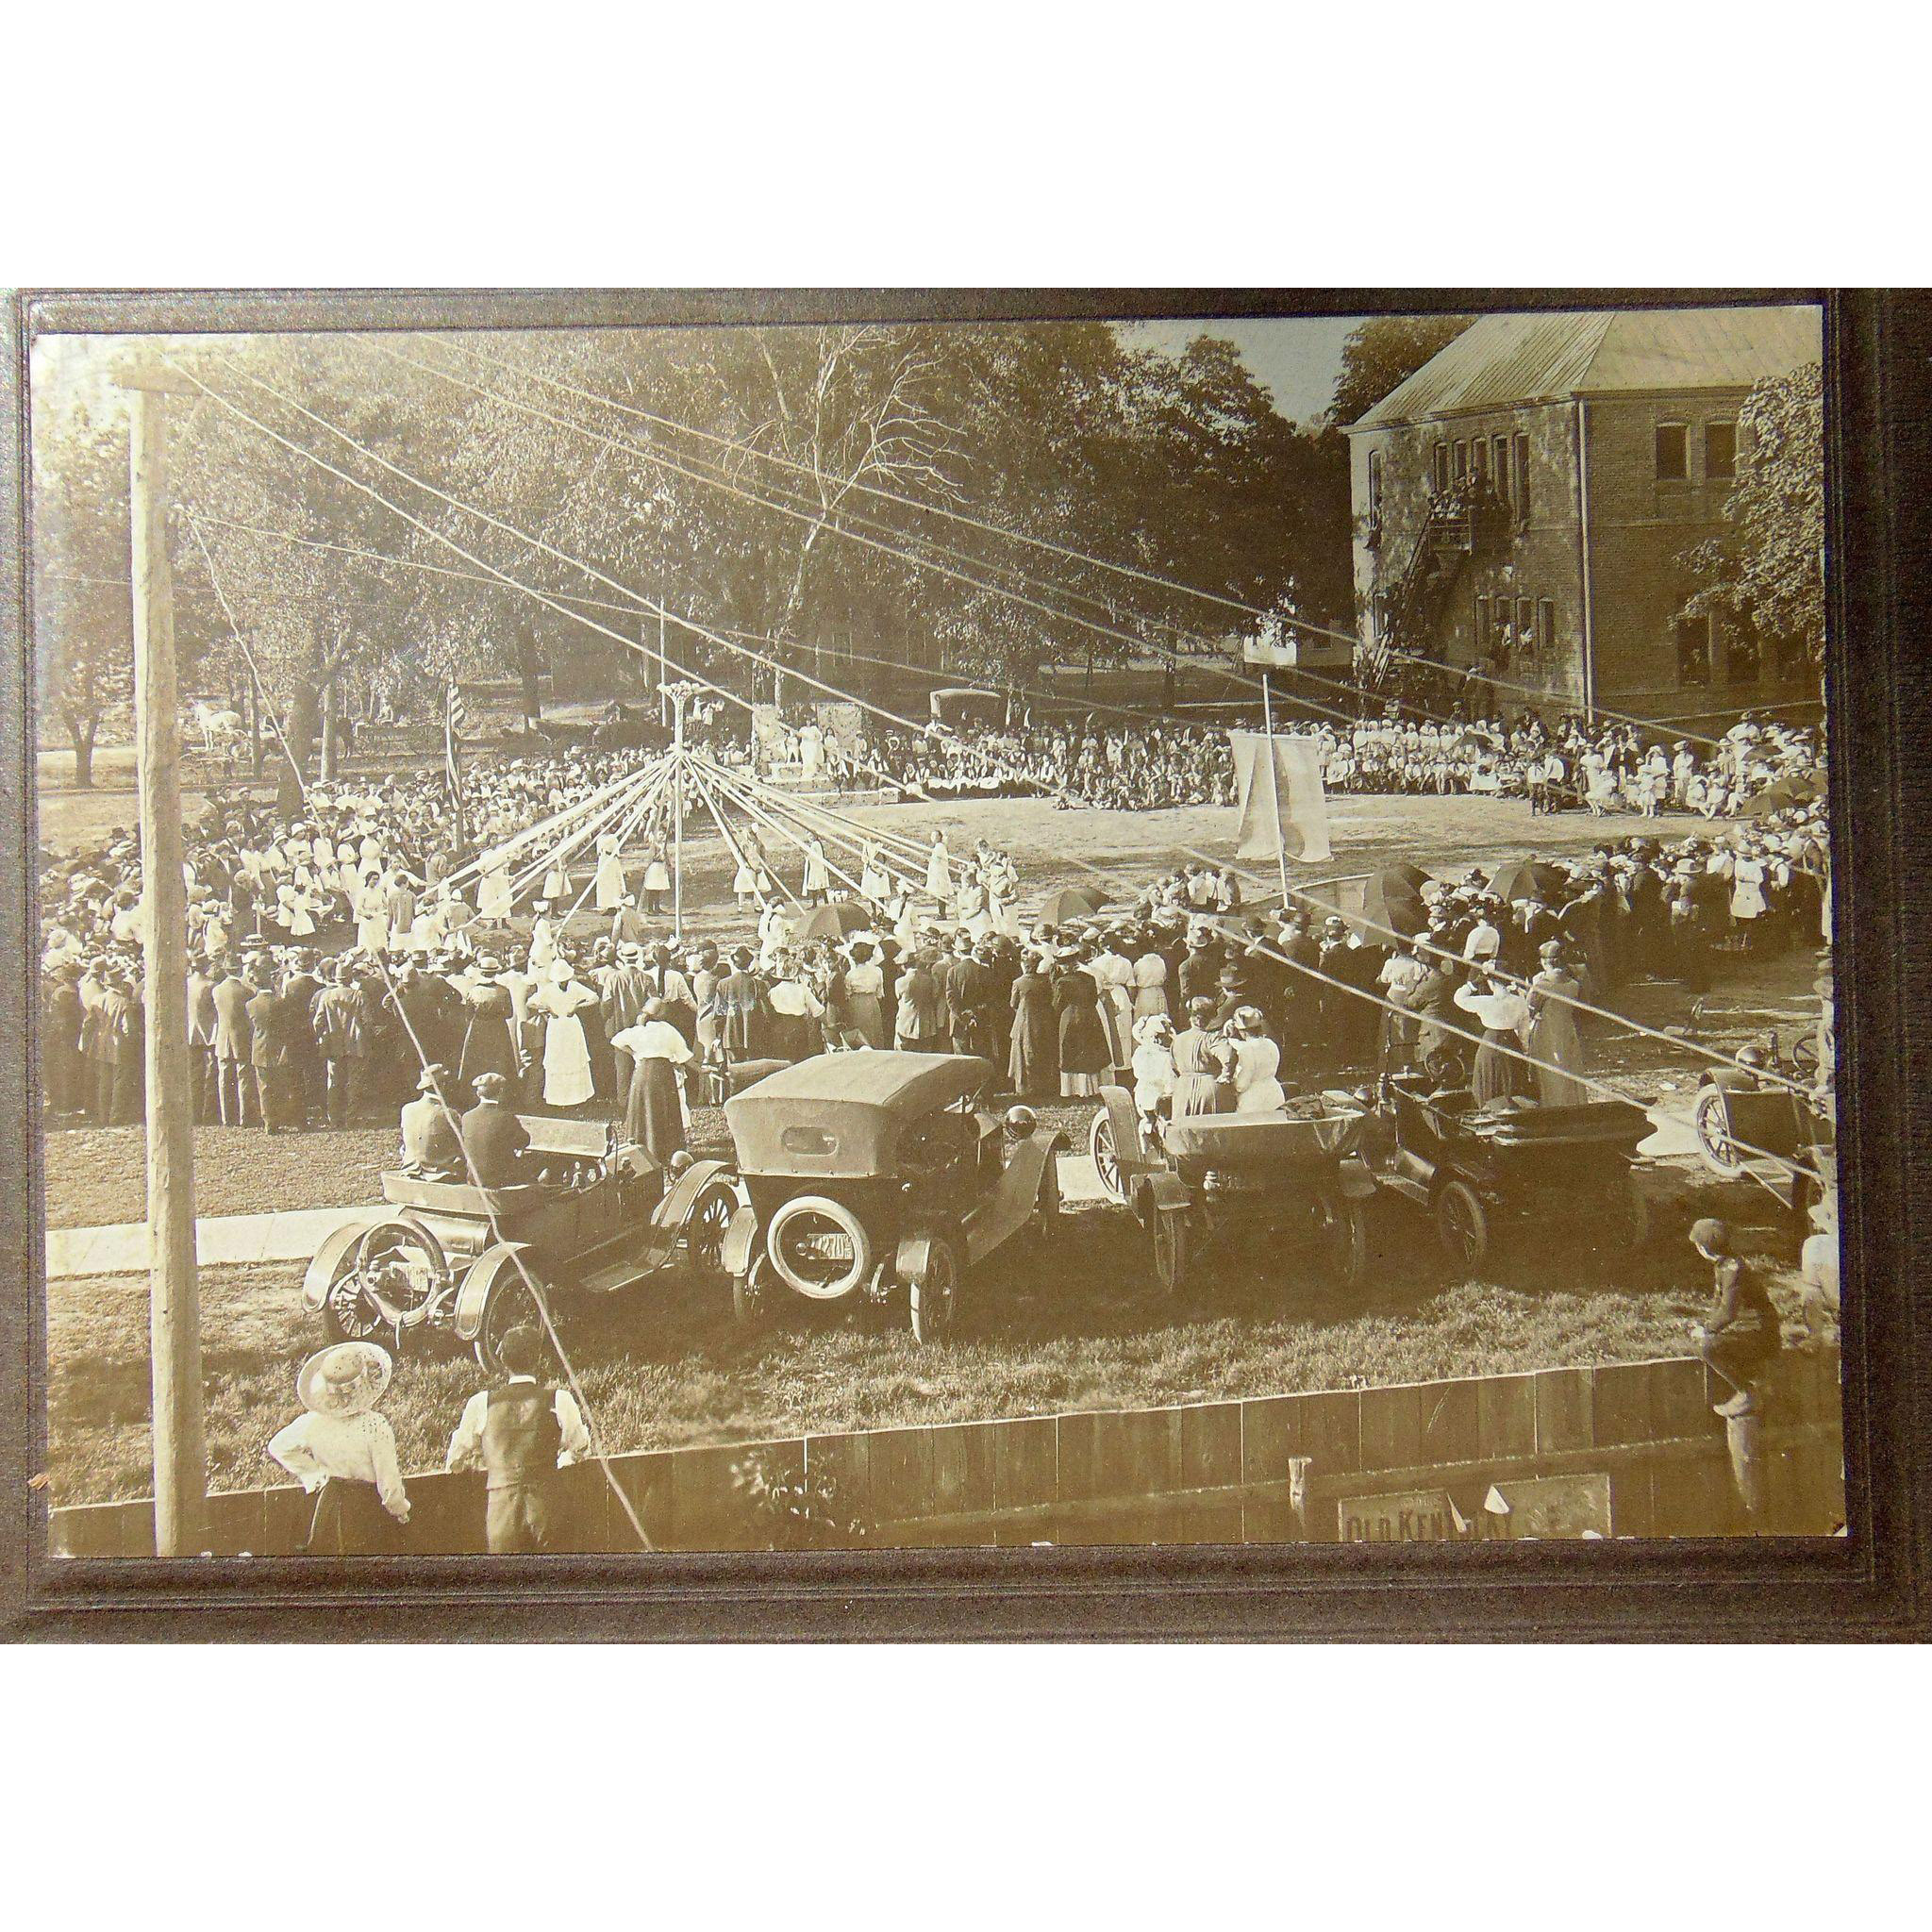 Wonderful May Day Small Town American Celebration Photograph c.1910